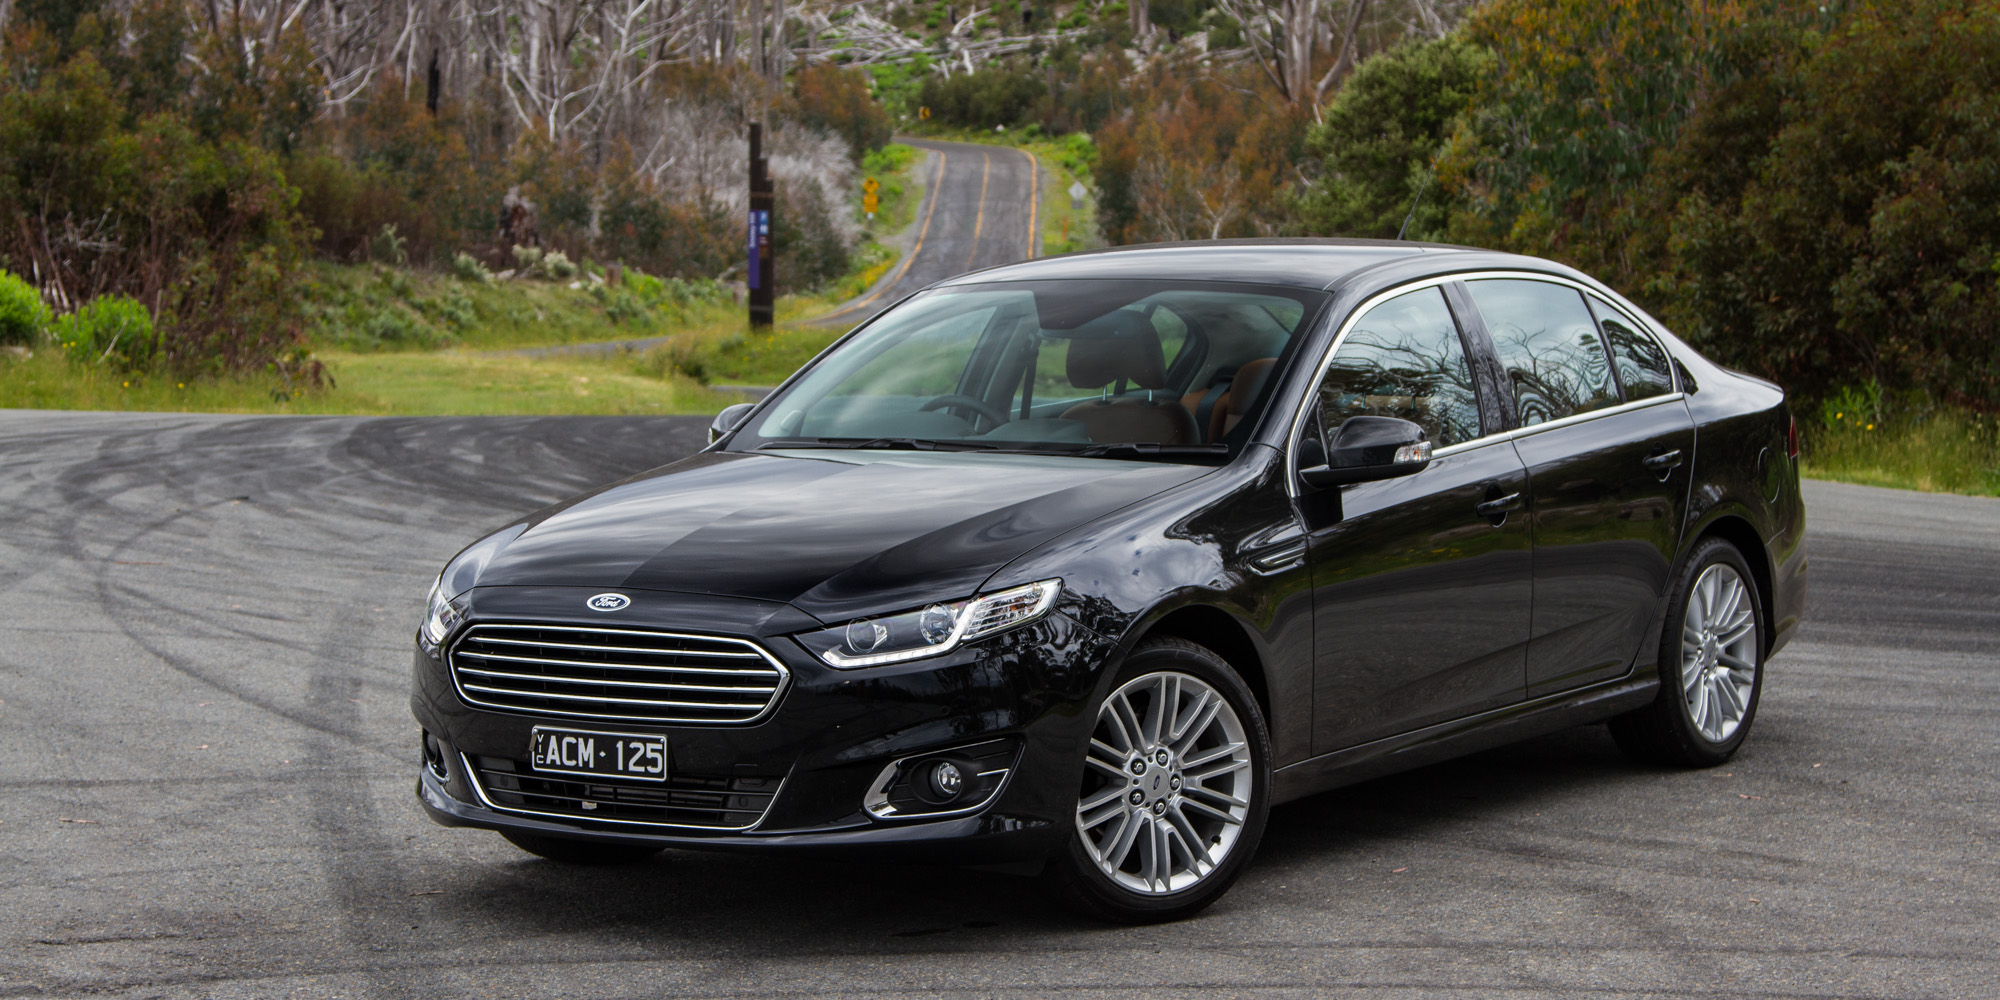 Mazda 3 Vs 6 >> Ford Falcon G6E v Holden Calais : Comparison review - Photos